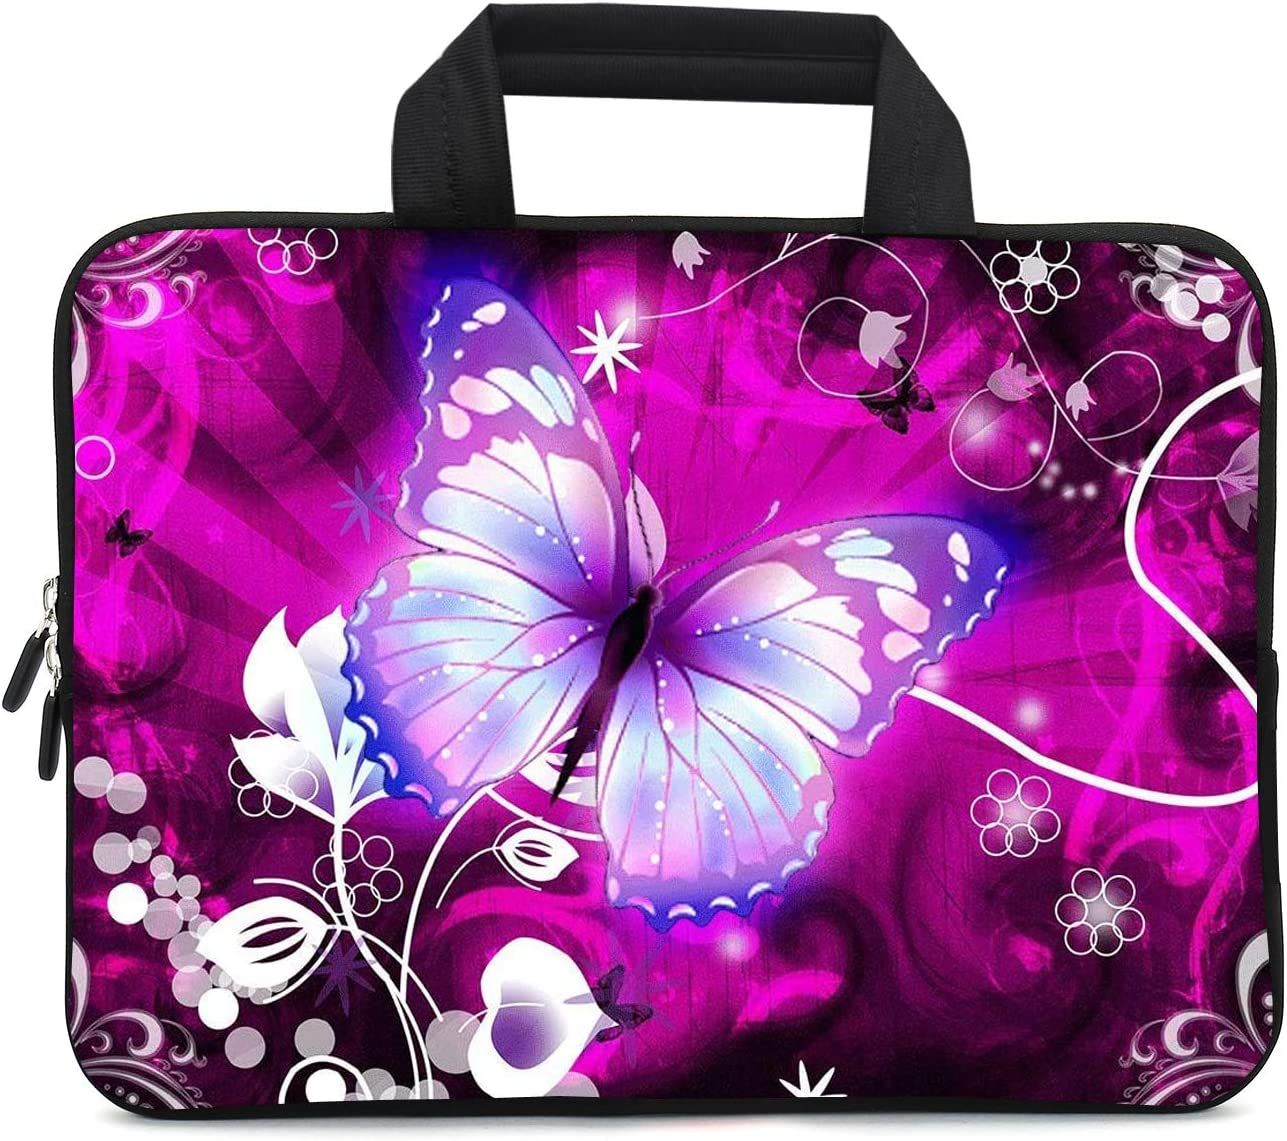 XMBFZ 11.6 12 12.1 Inch Laptop Carrying Bag Protective Chromebook Case Pouch Netbook Notebook Ultrabook Bag Tablet Sleeve Cover Travel Briefcase with Handle for Men Women (Butterfly)